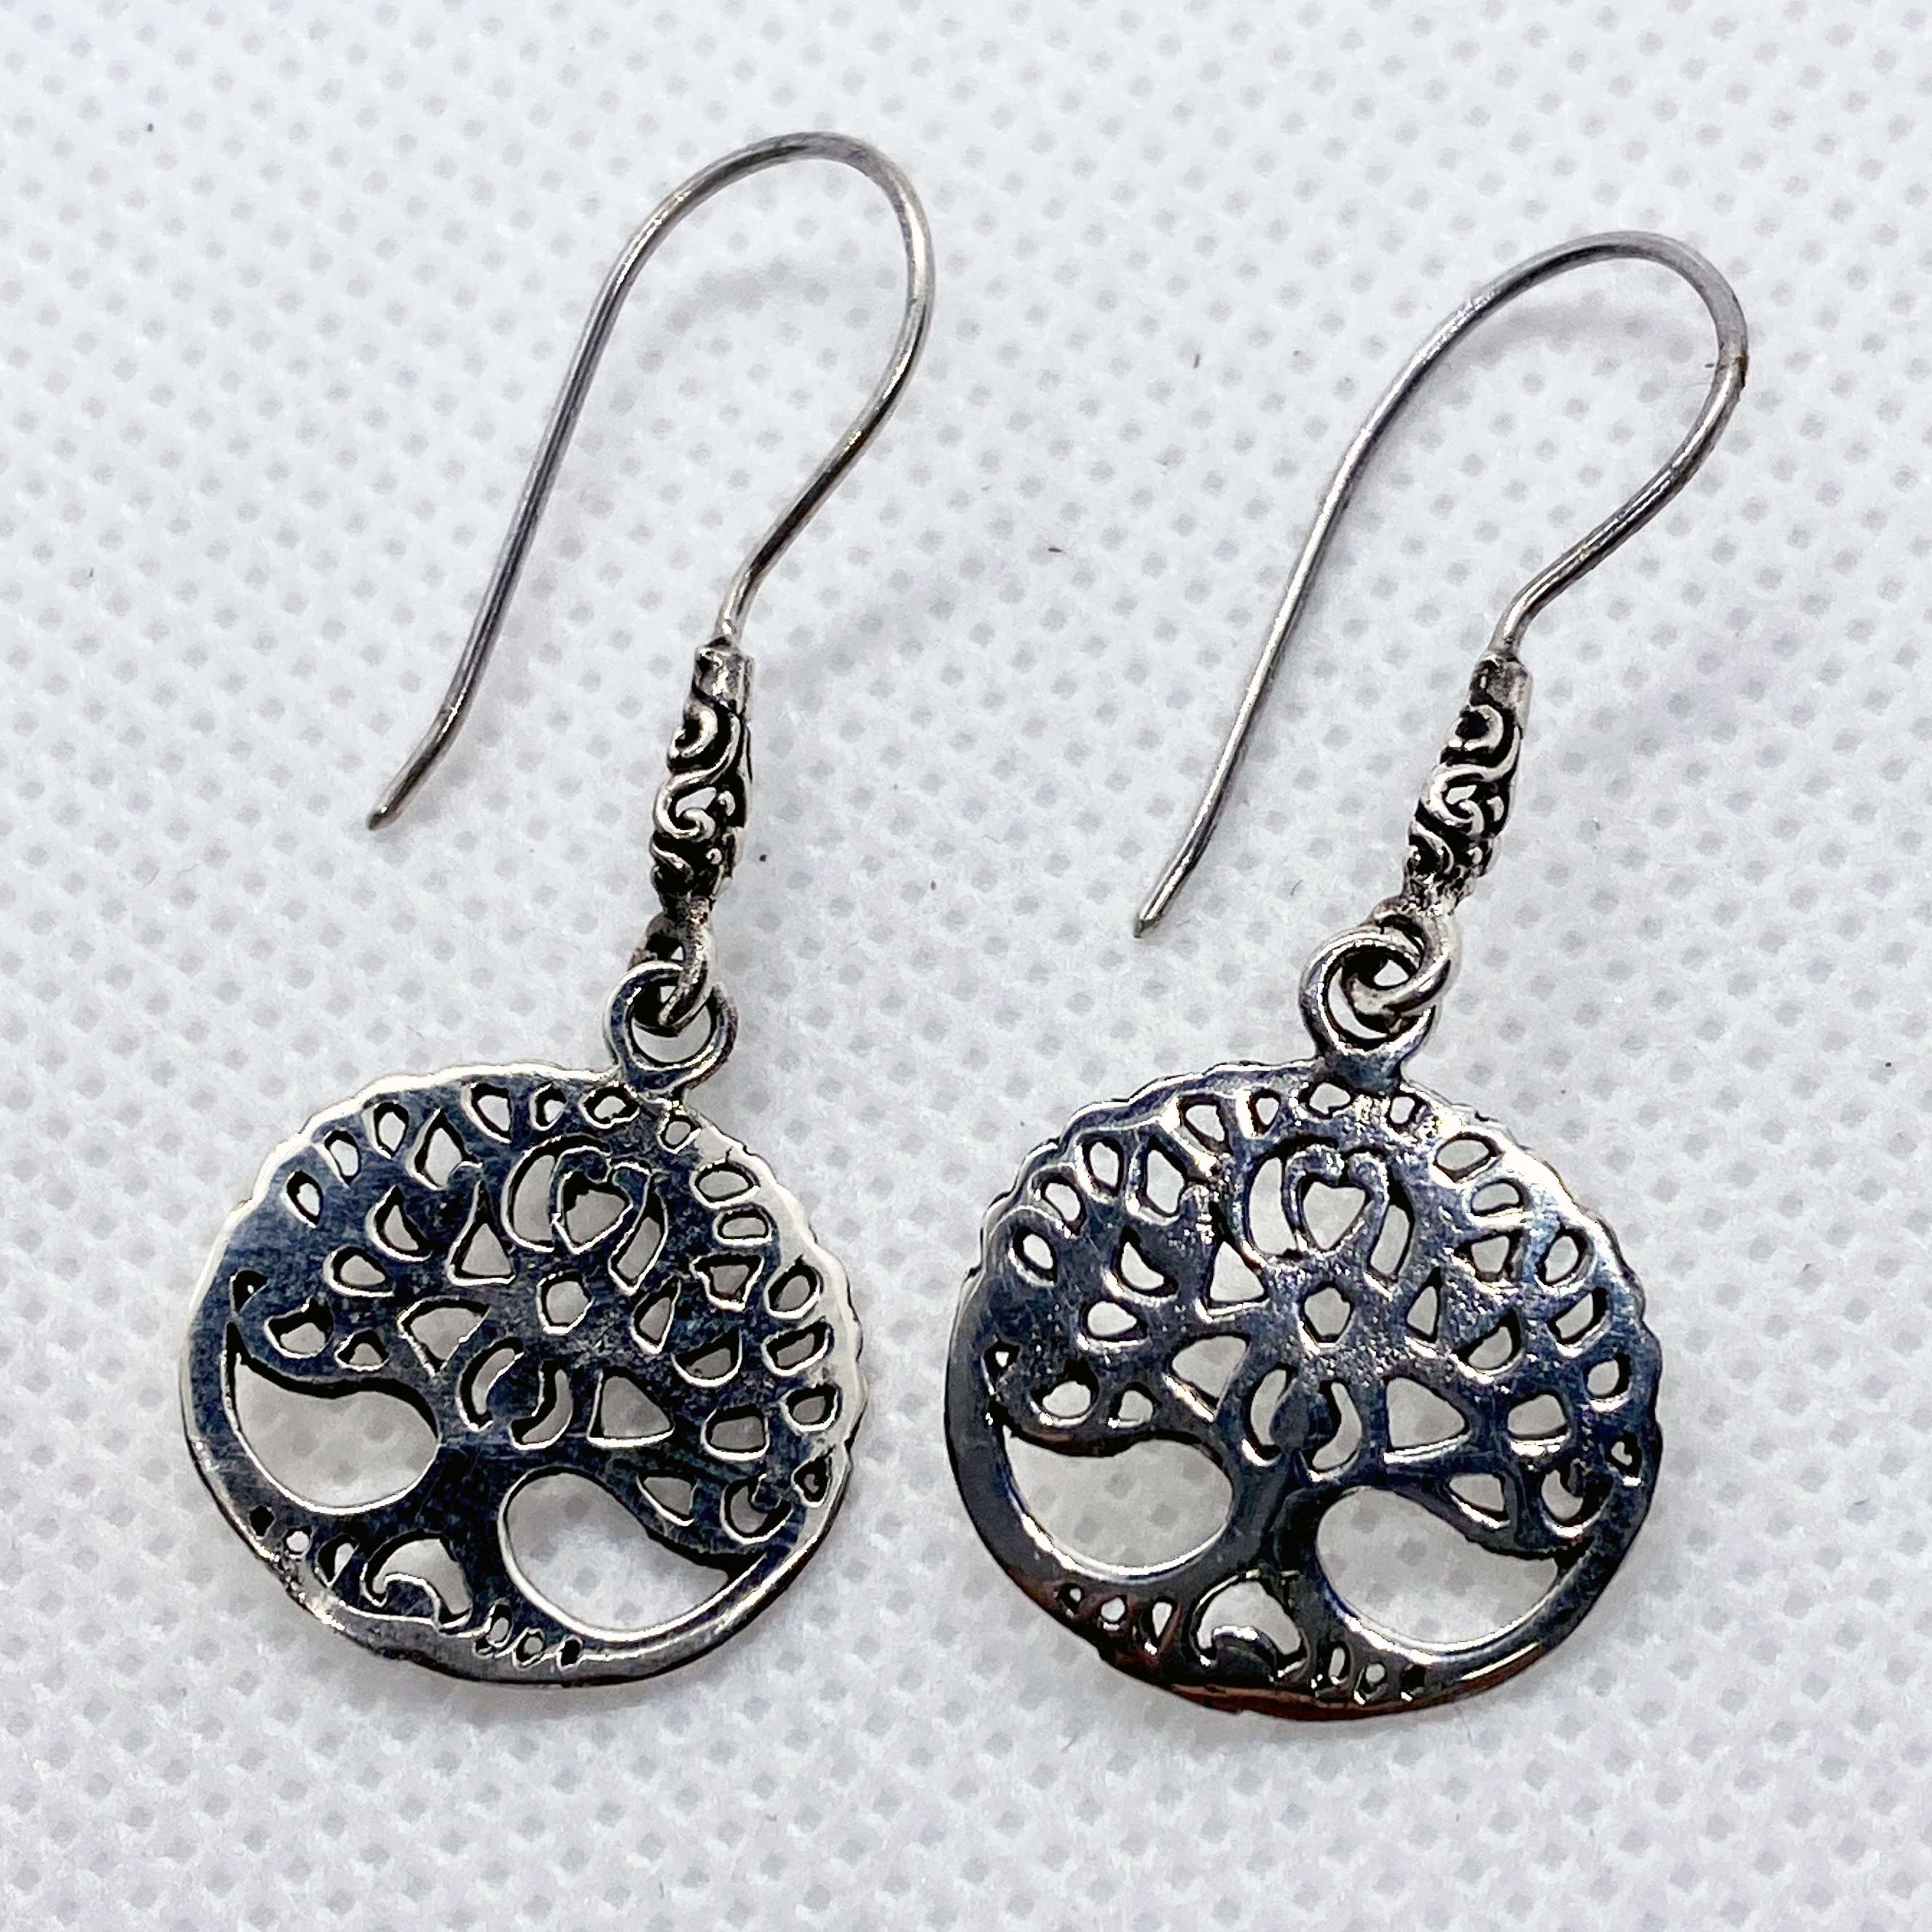 (UNIQUE 925 BALI STERLING SILVER THREE OF LIFE EARRINGS)